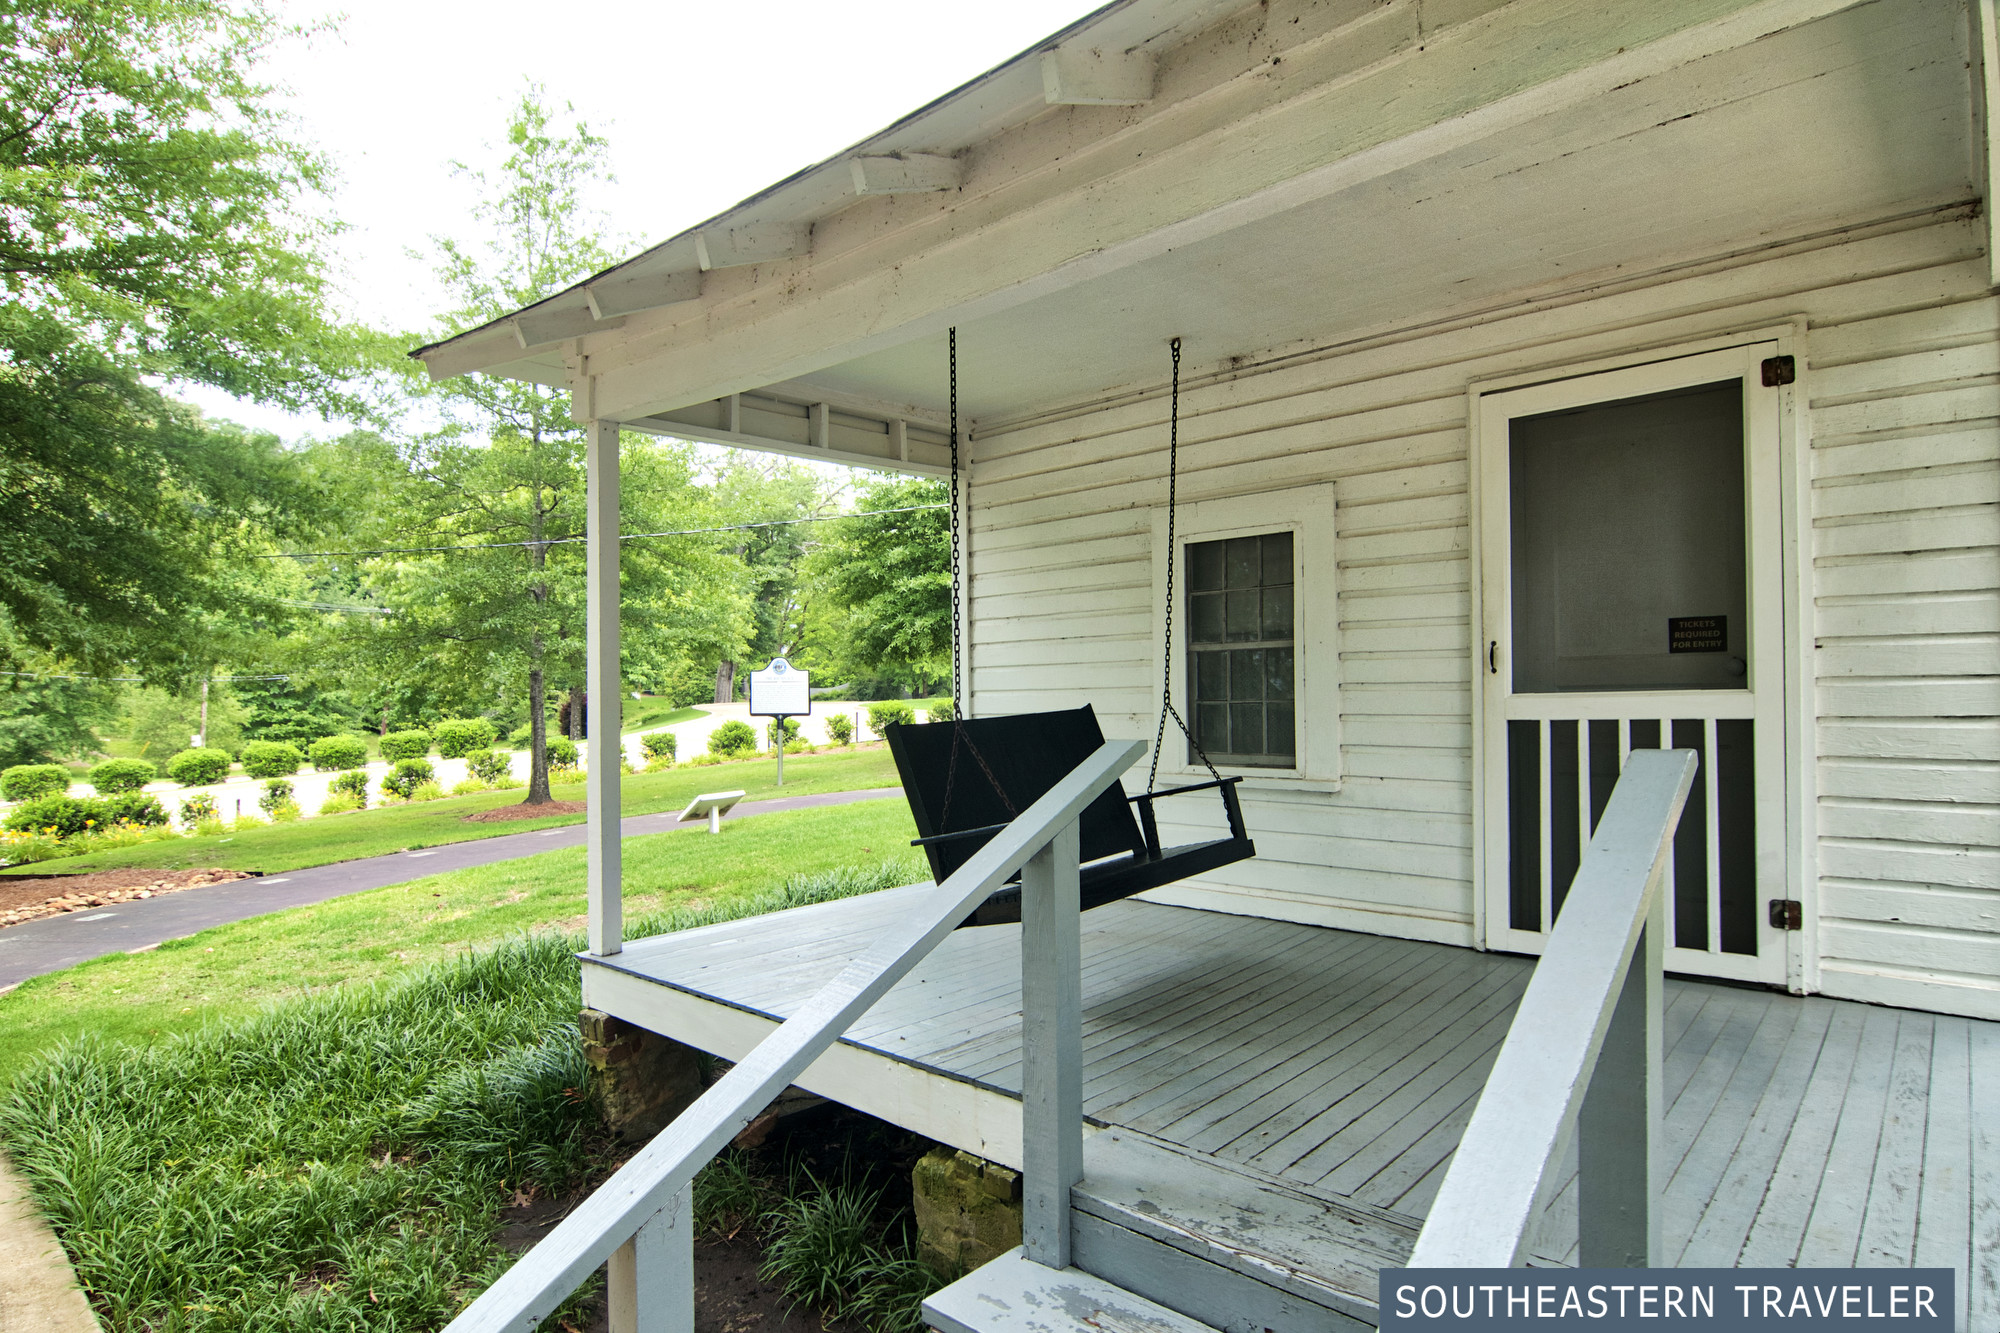 Porch swing on a white house where Elvis Presley was born in Tupelo, Mississippi